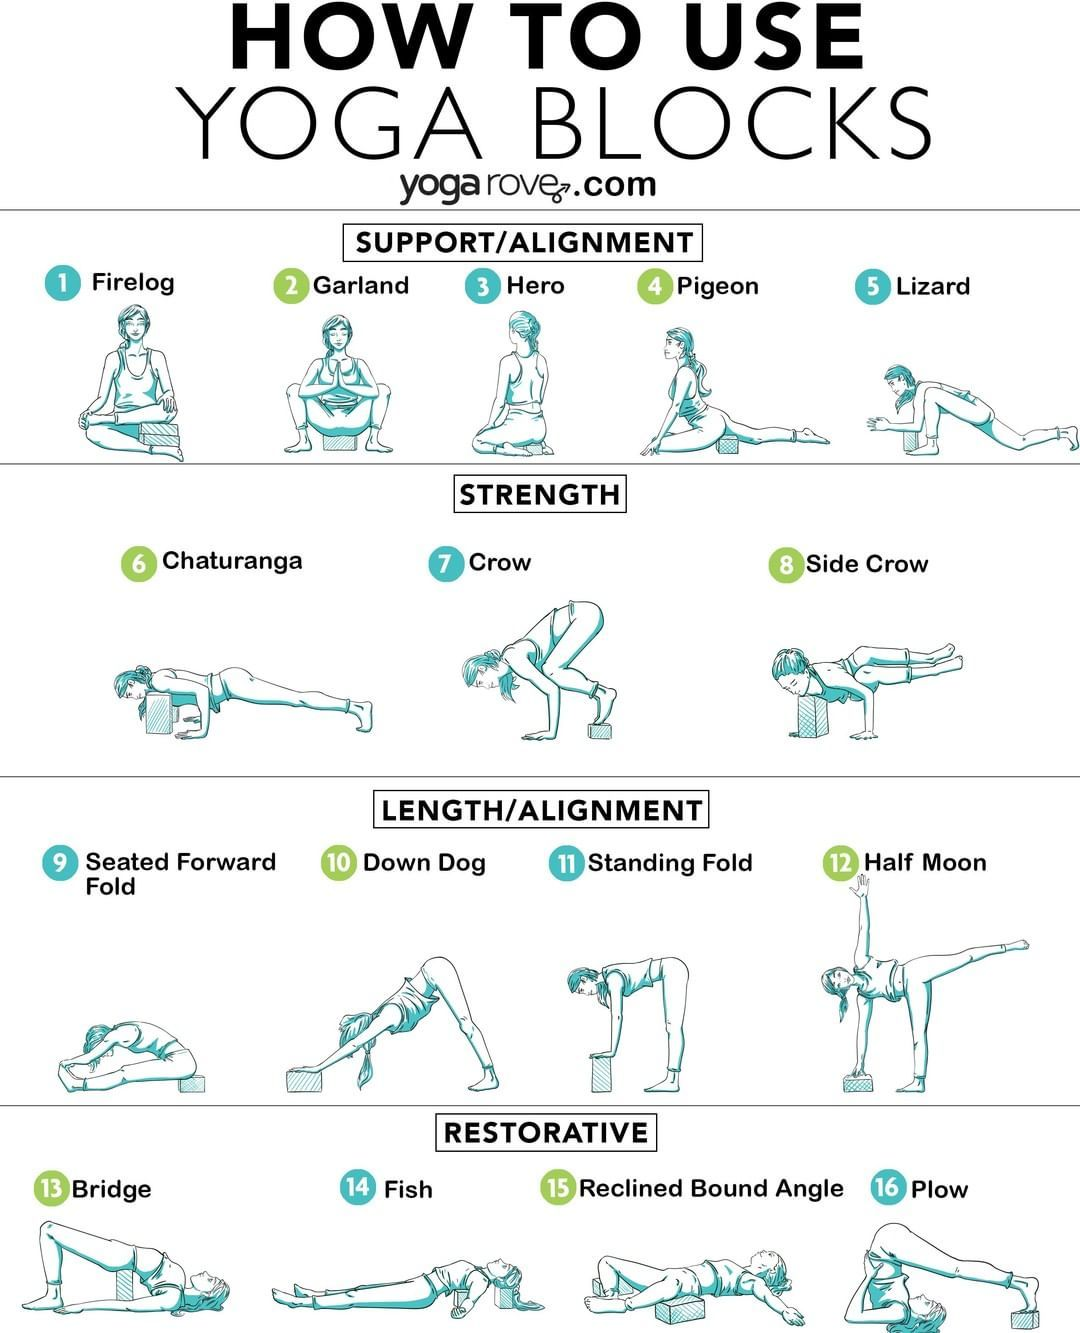 143 Likes, 6 Comments Yoga Rove Yoga for Beginners